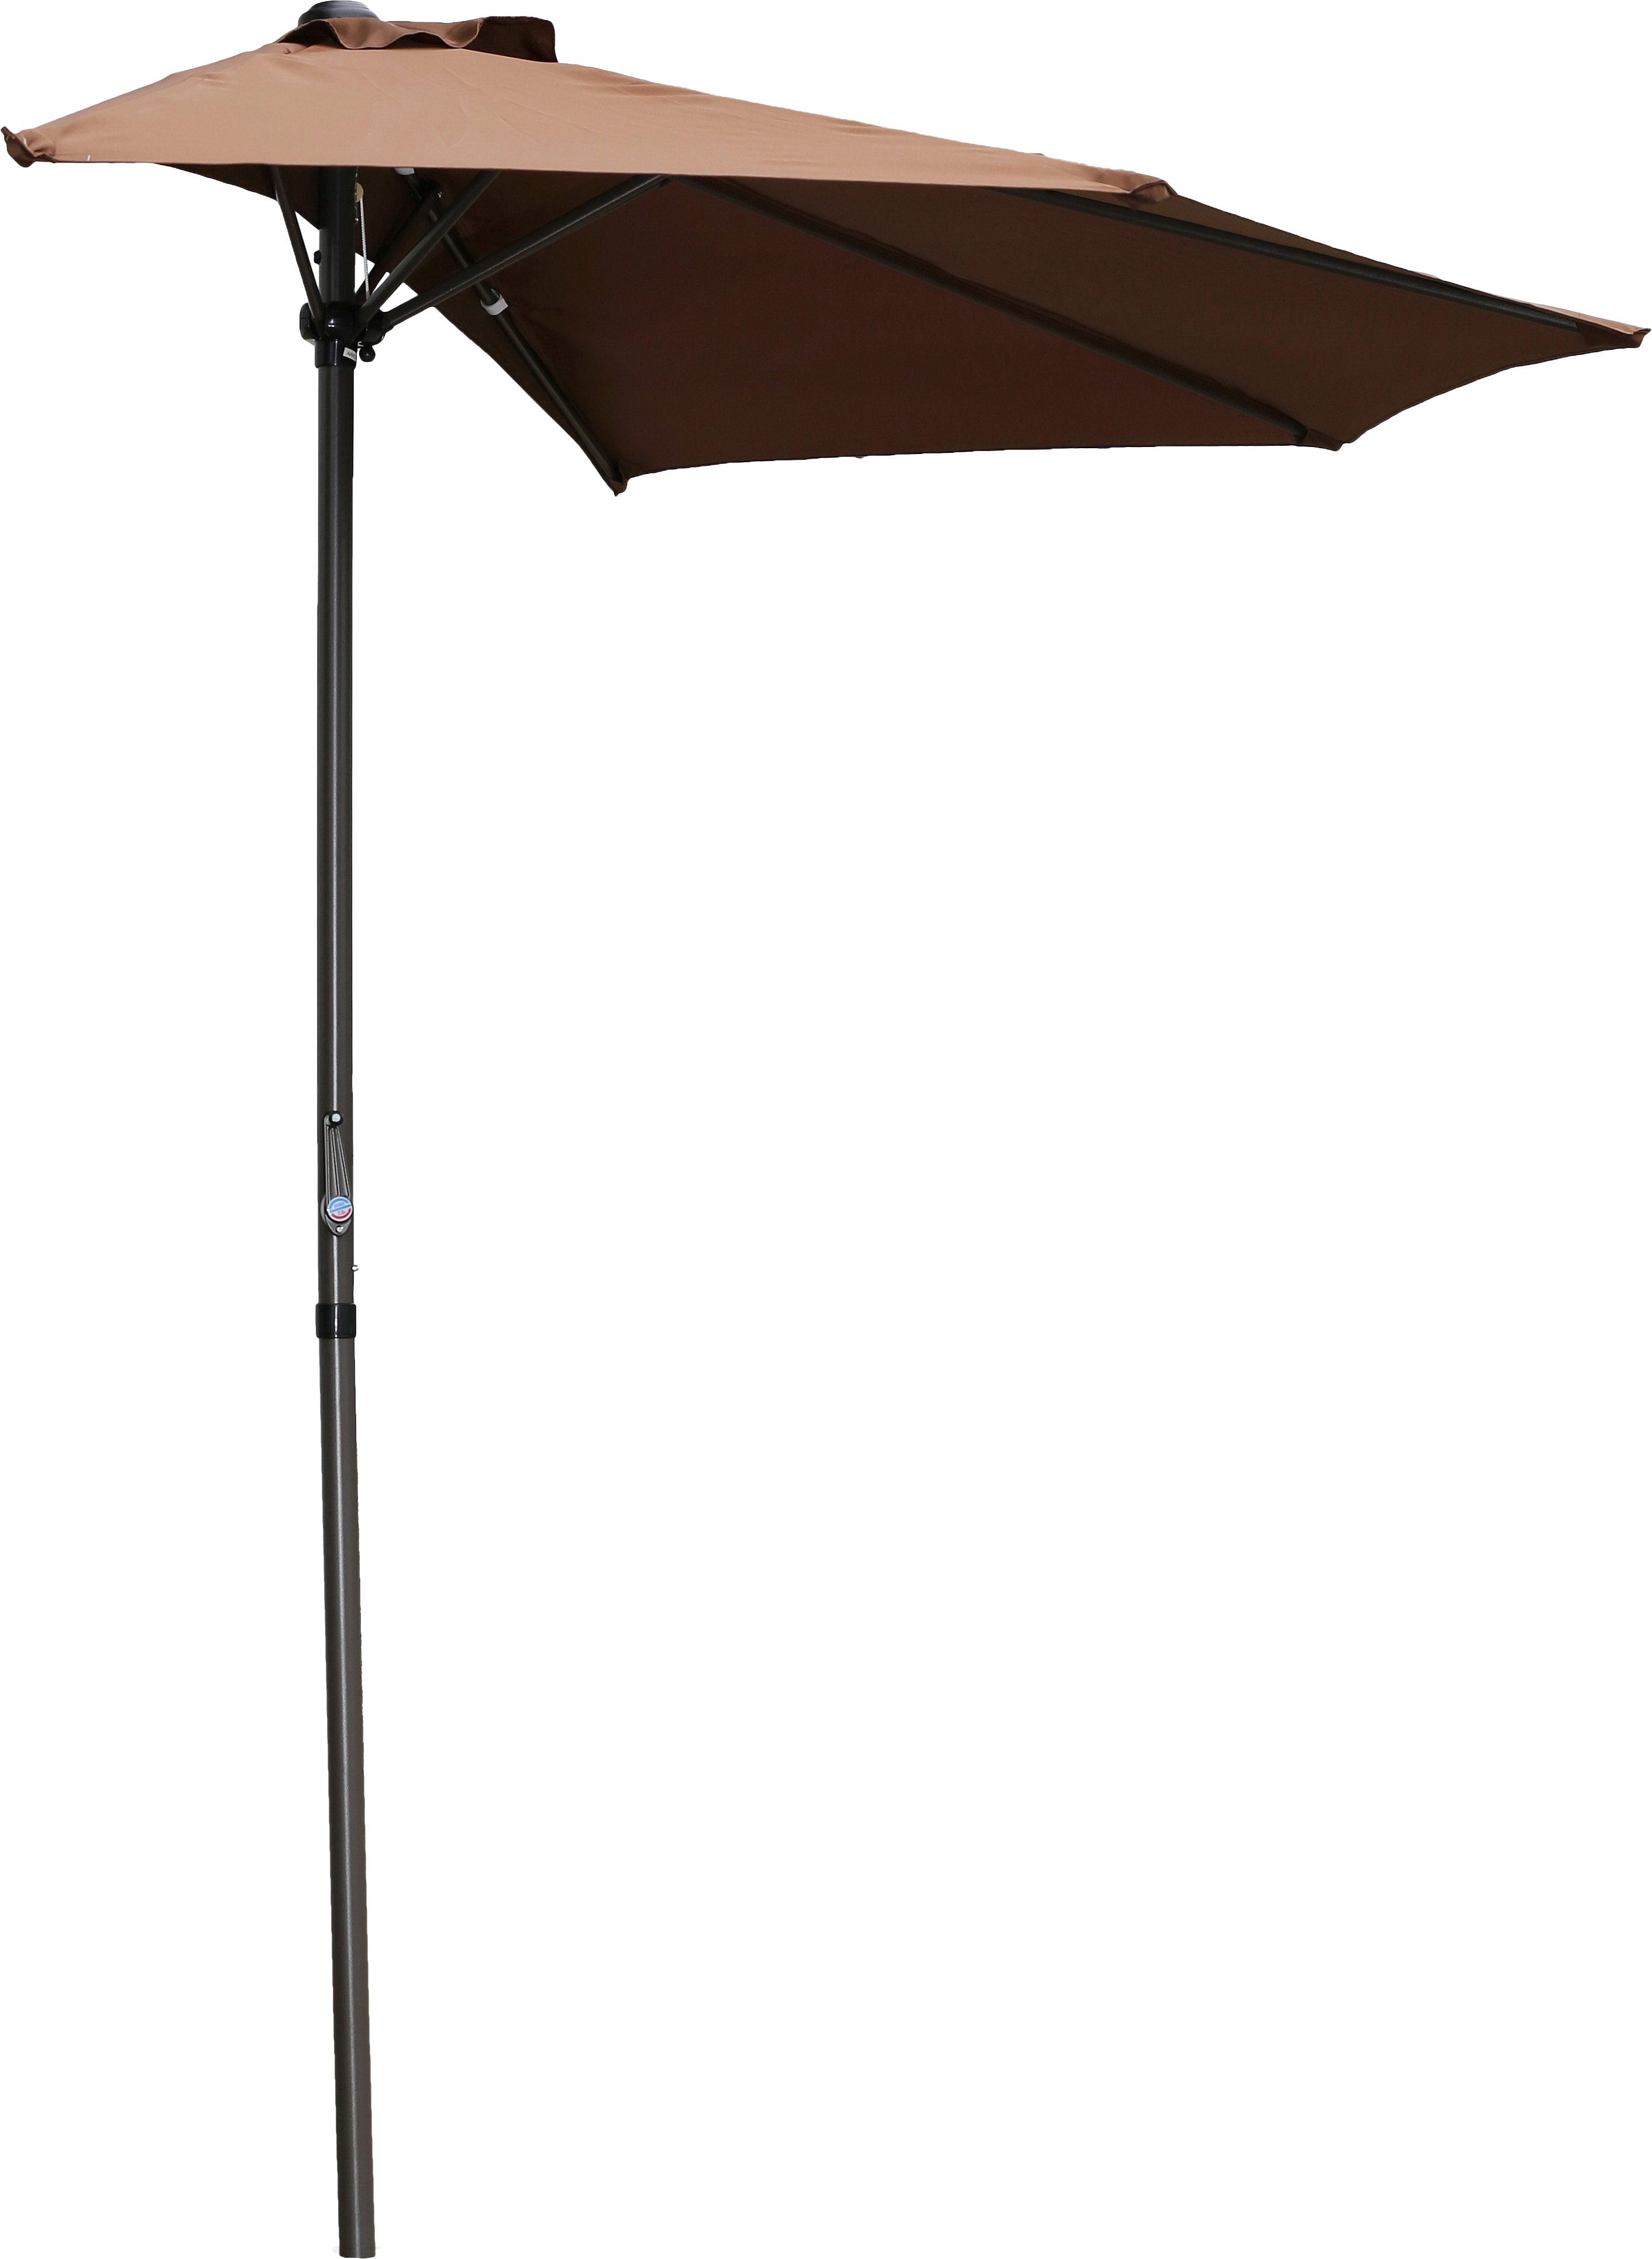 Sheehan Half Market Umbrellas Intended For Well Known Dade City North 9' Half Market Umbrella (View 15 of 20)